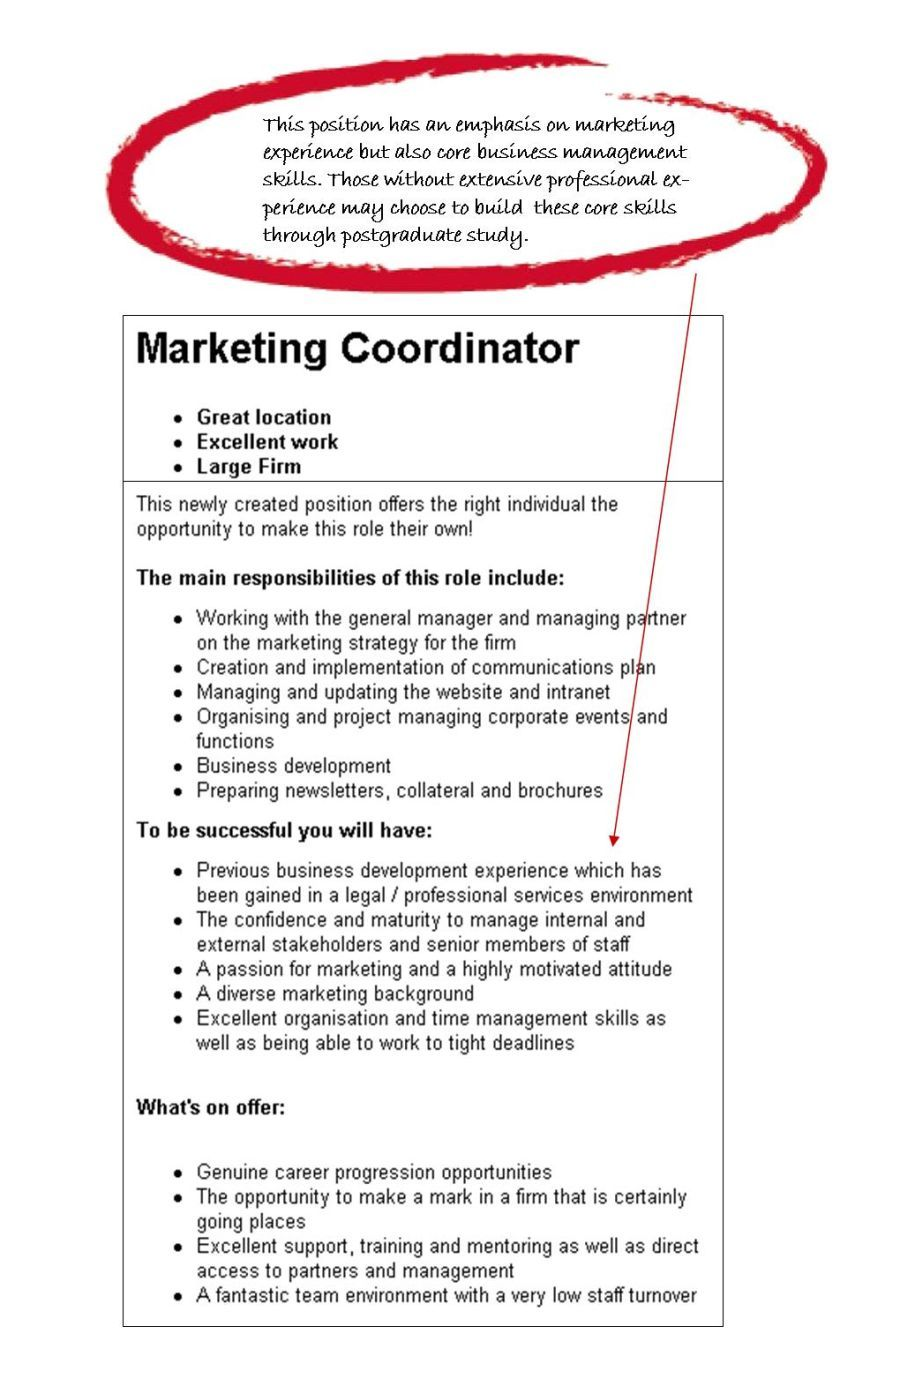 Good Resume Objective Objectives For Resume  Resume  Pinterest  Resume Objective And